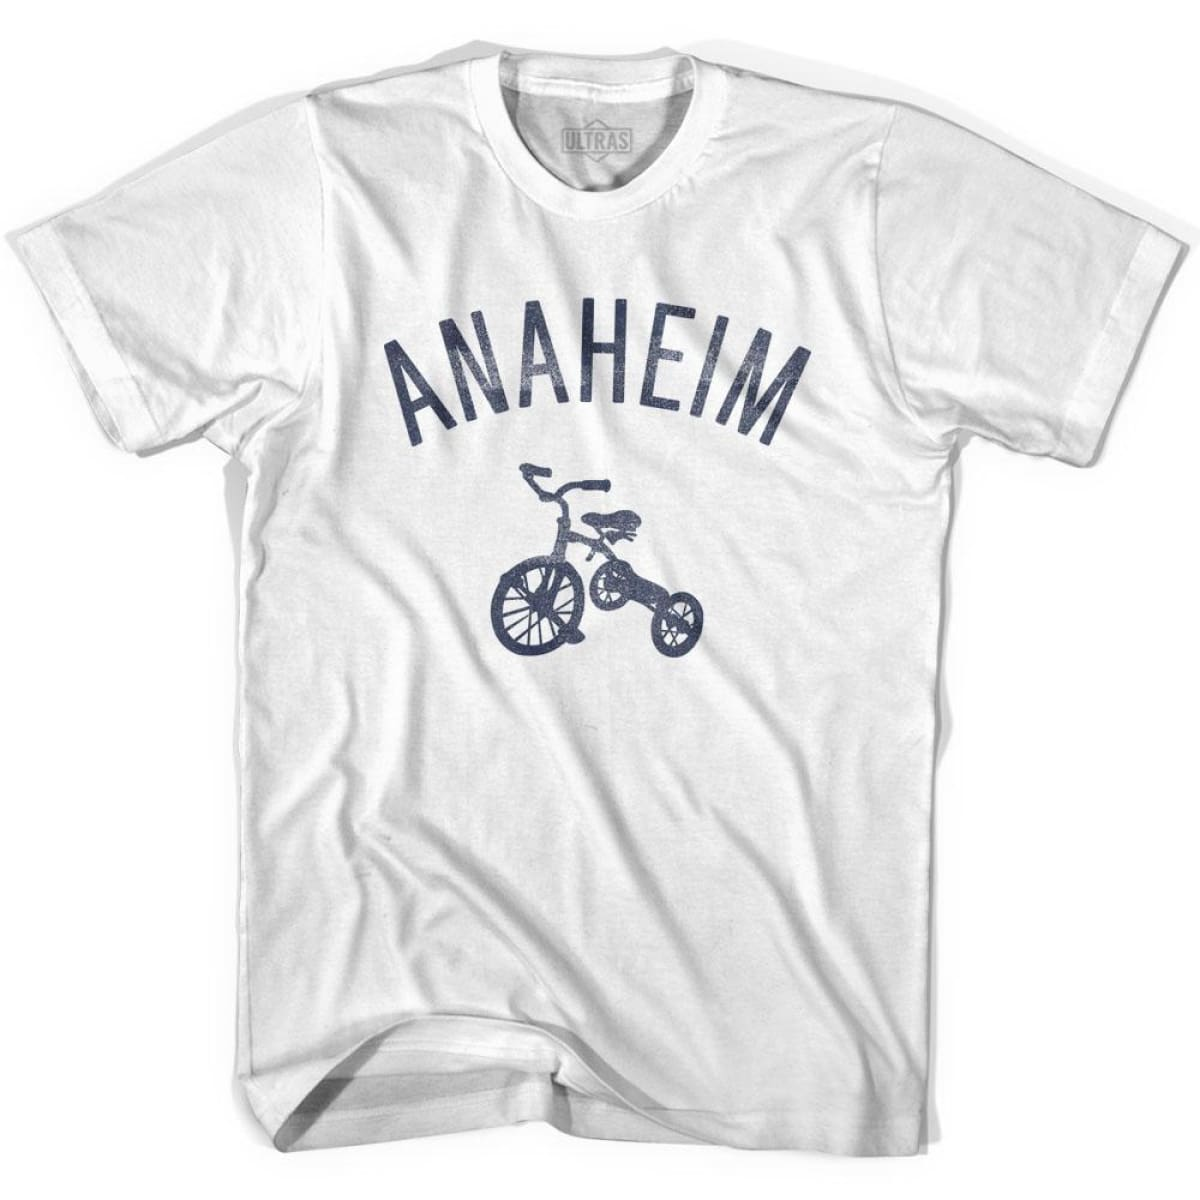 Anaheim City Tricycle Youth Cotton T-shirt - Tricycle City